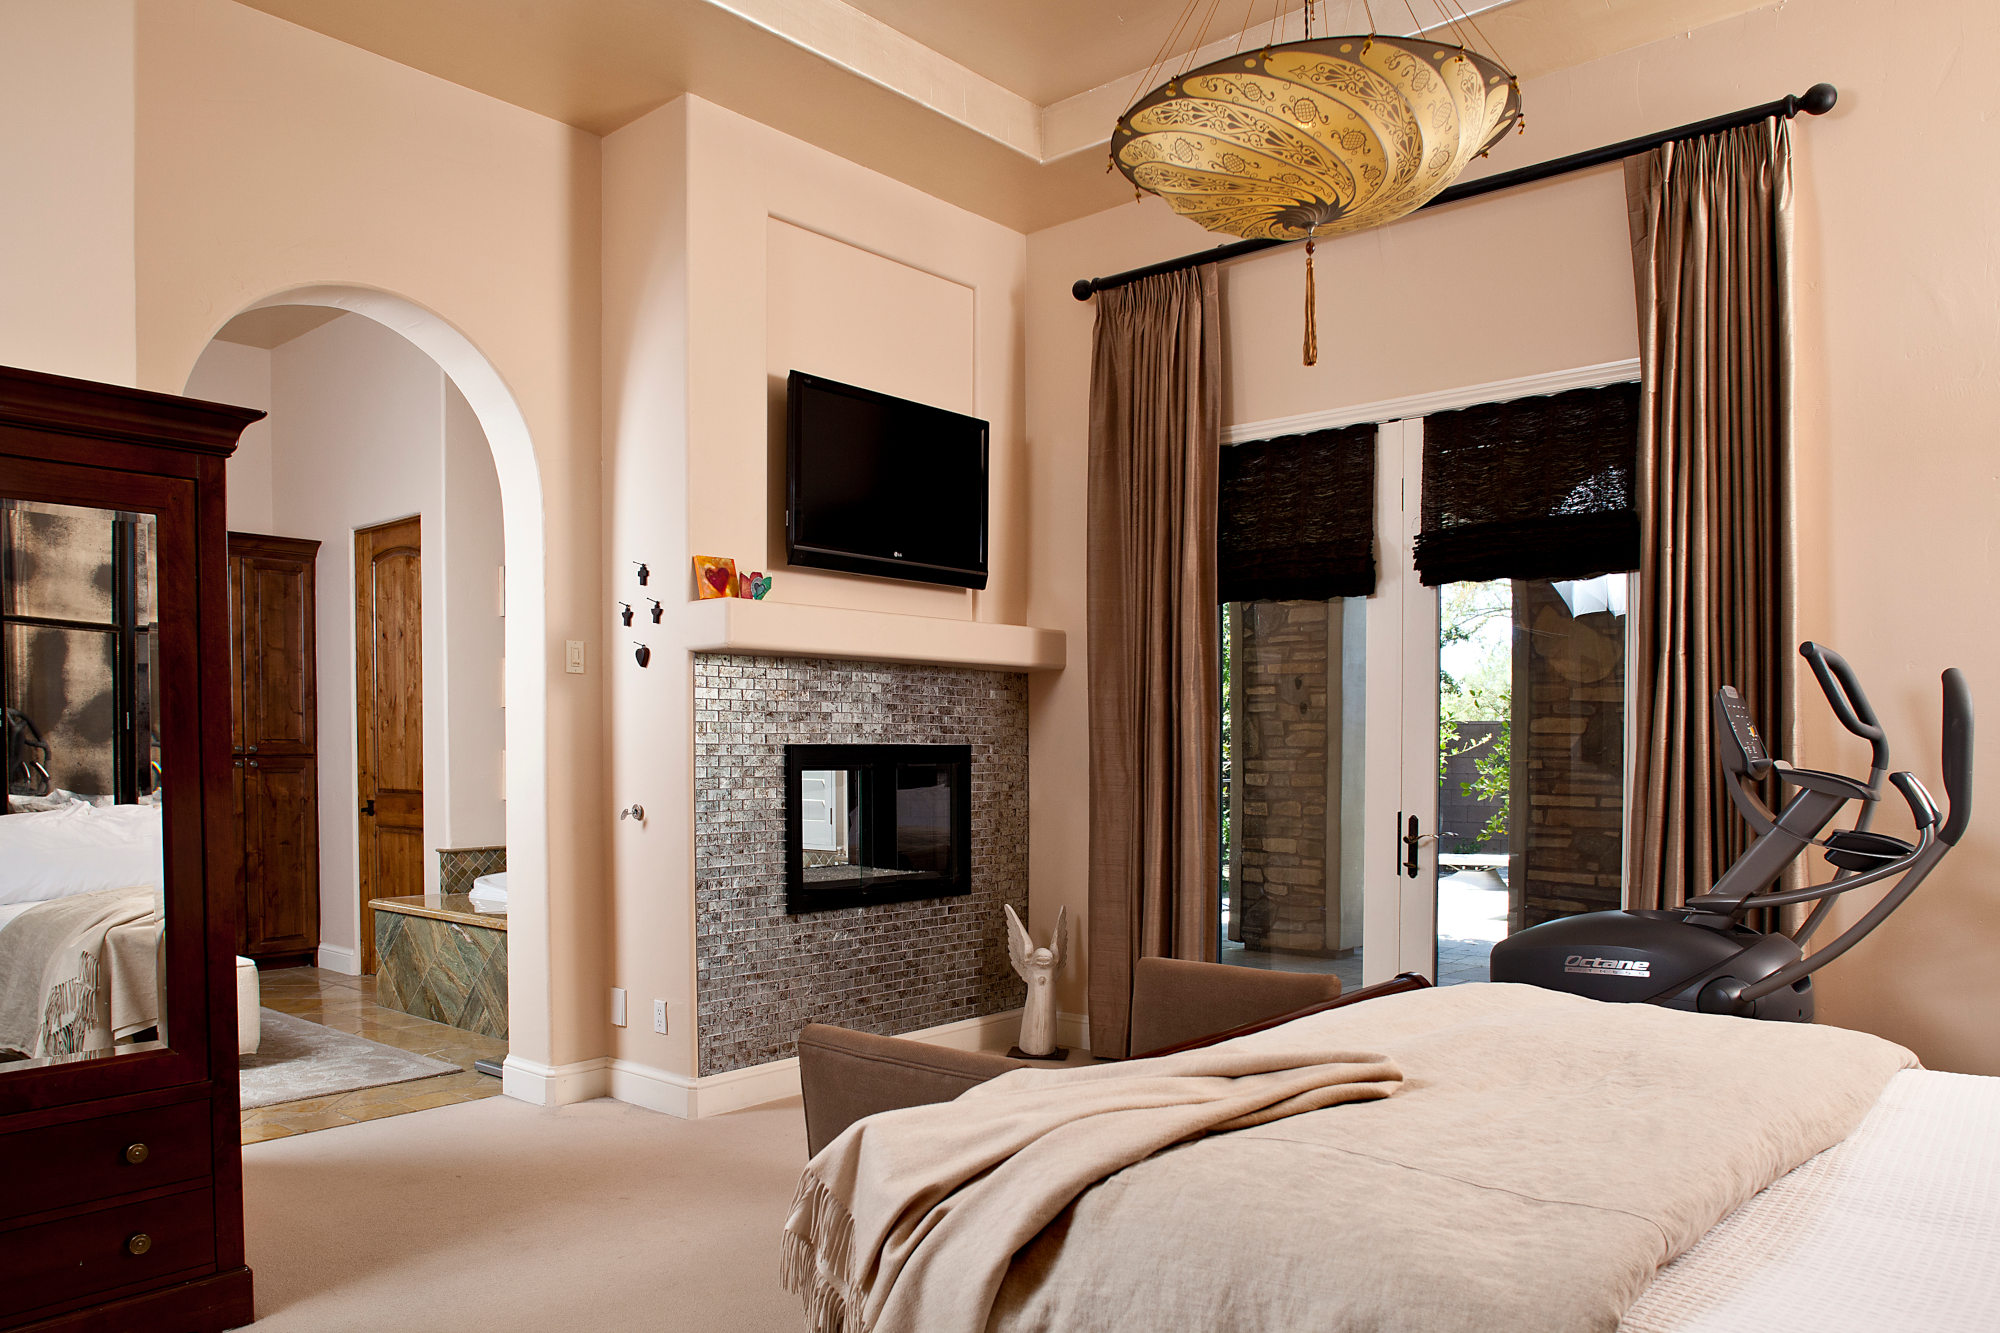 Spanish styled master bedroom with fireplace and large french doors to the garden.